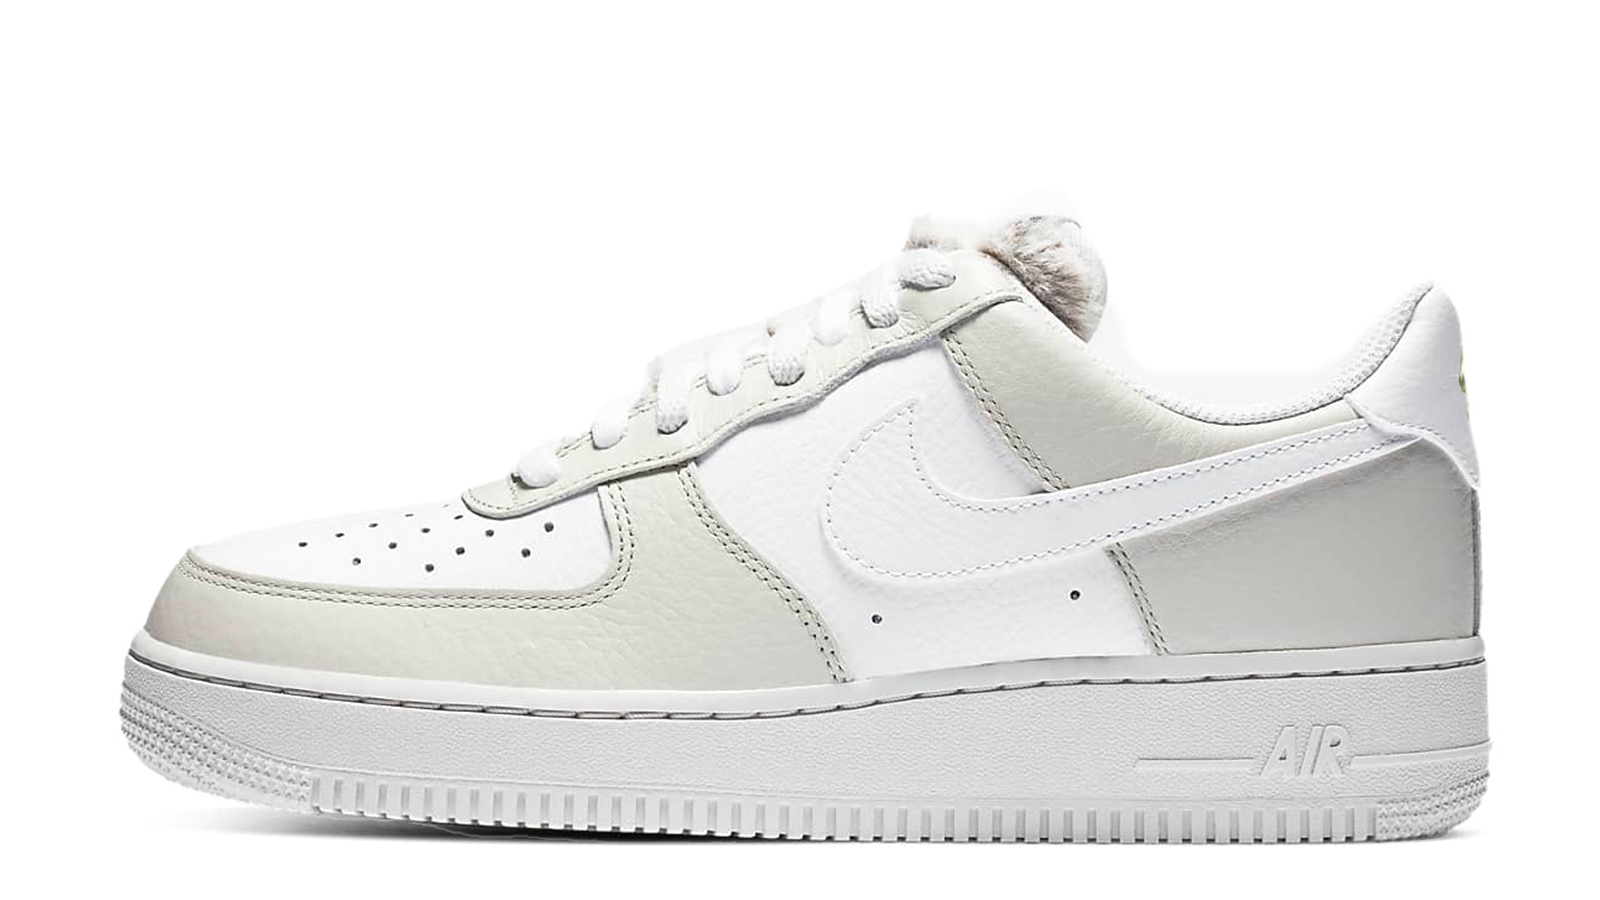 Nike Air Force 1 '07 Light Bone White DC1165-001